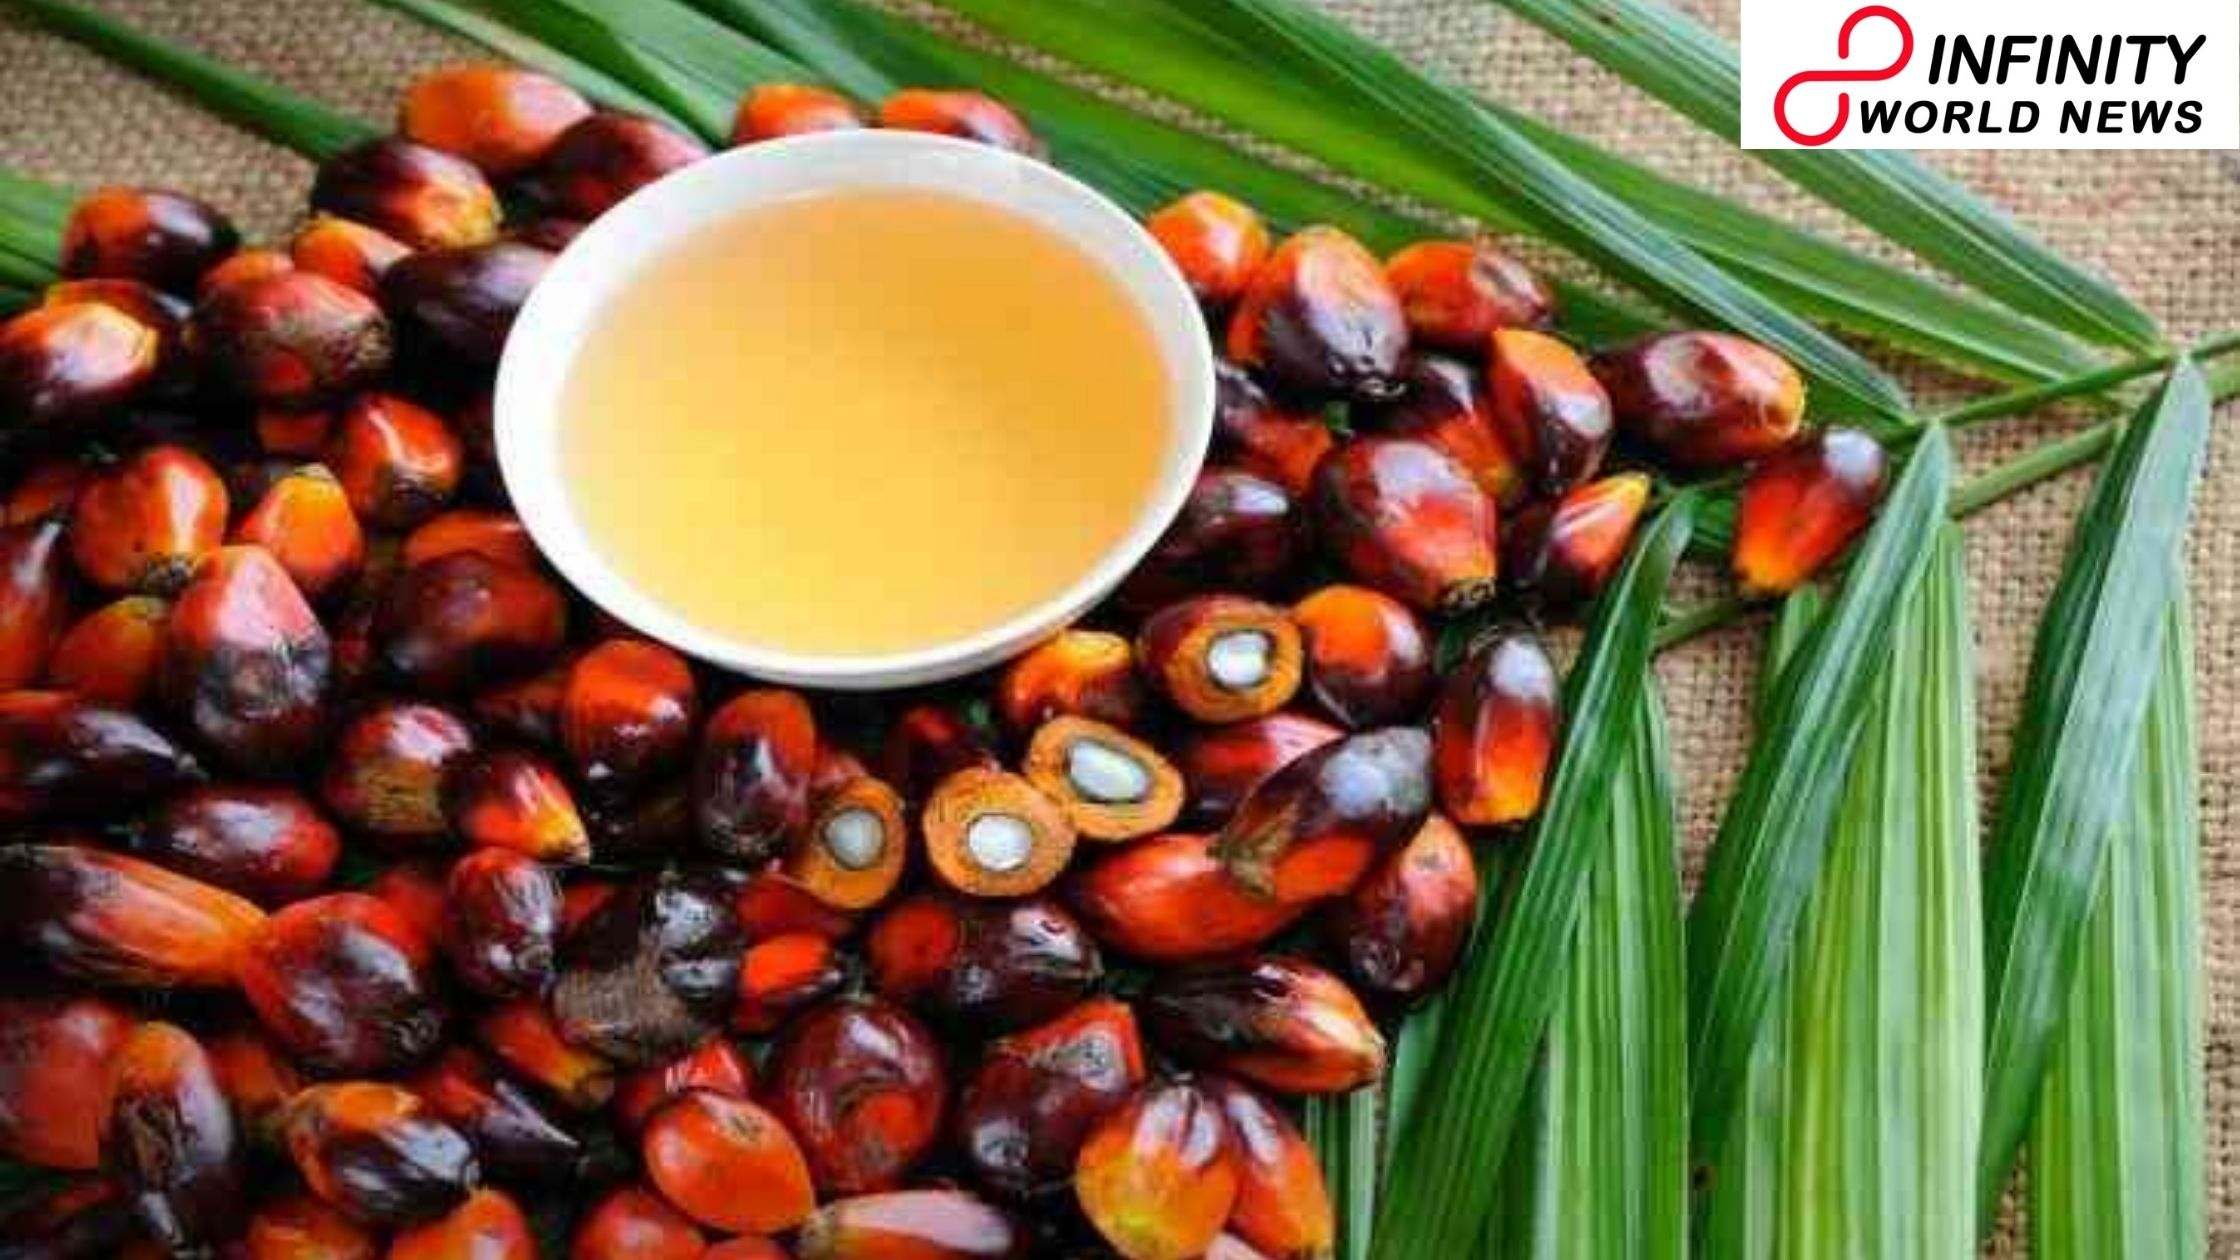 Vitamin E of palm oil helps in boosting safe reaction, discovers the study